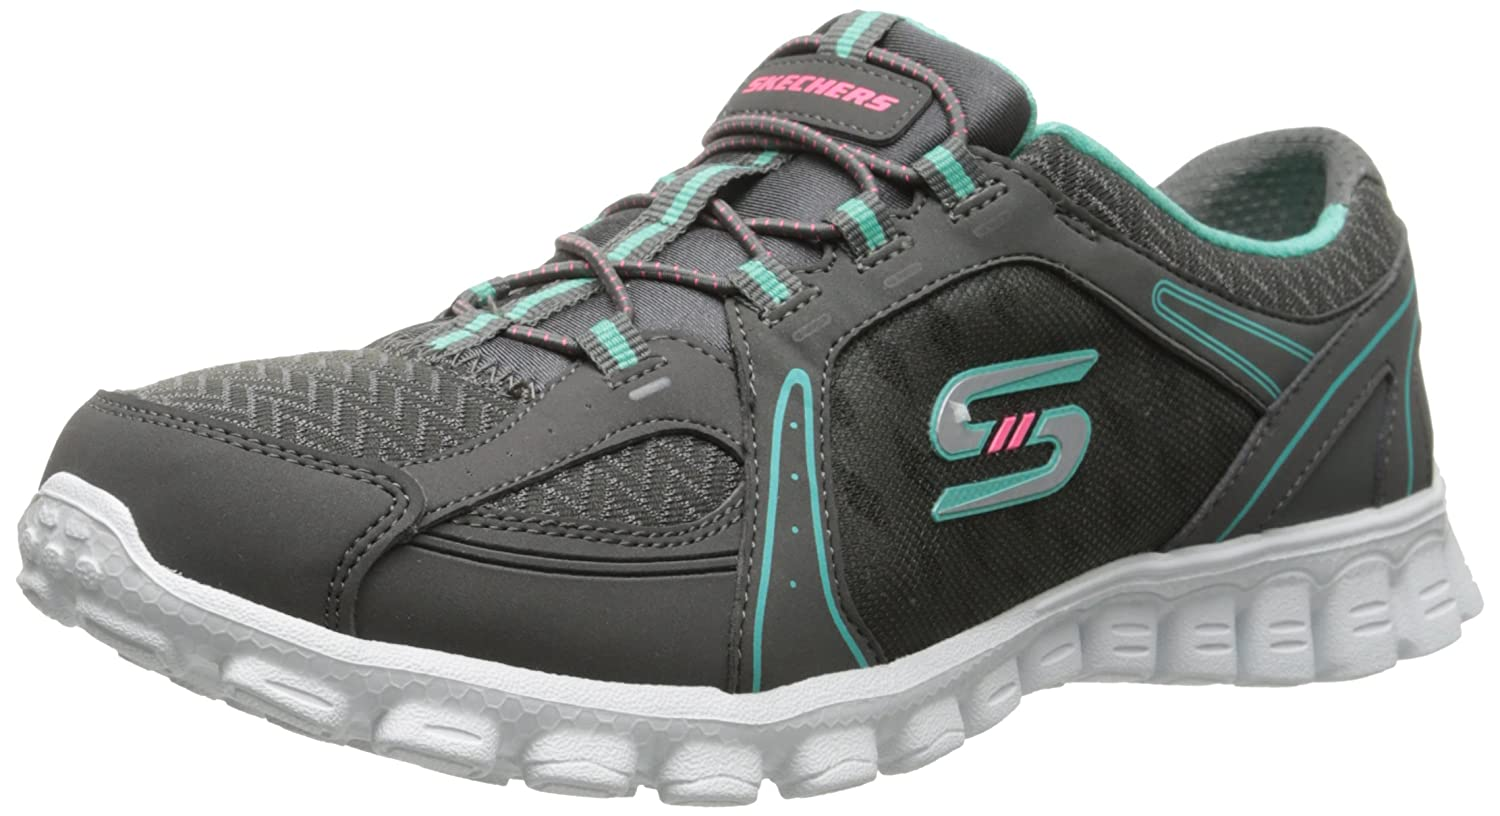 Skechers Women's EZ Flex 2 Right On Fashion Sneaker куклы gulliver кукла земляничка 50 см